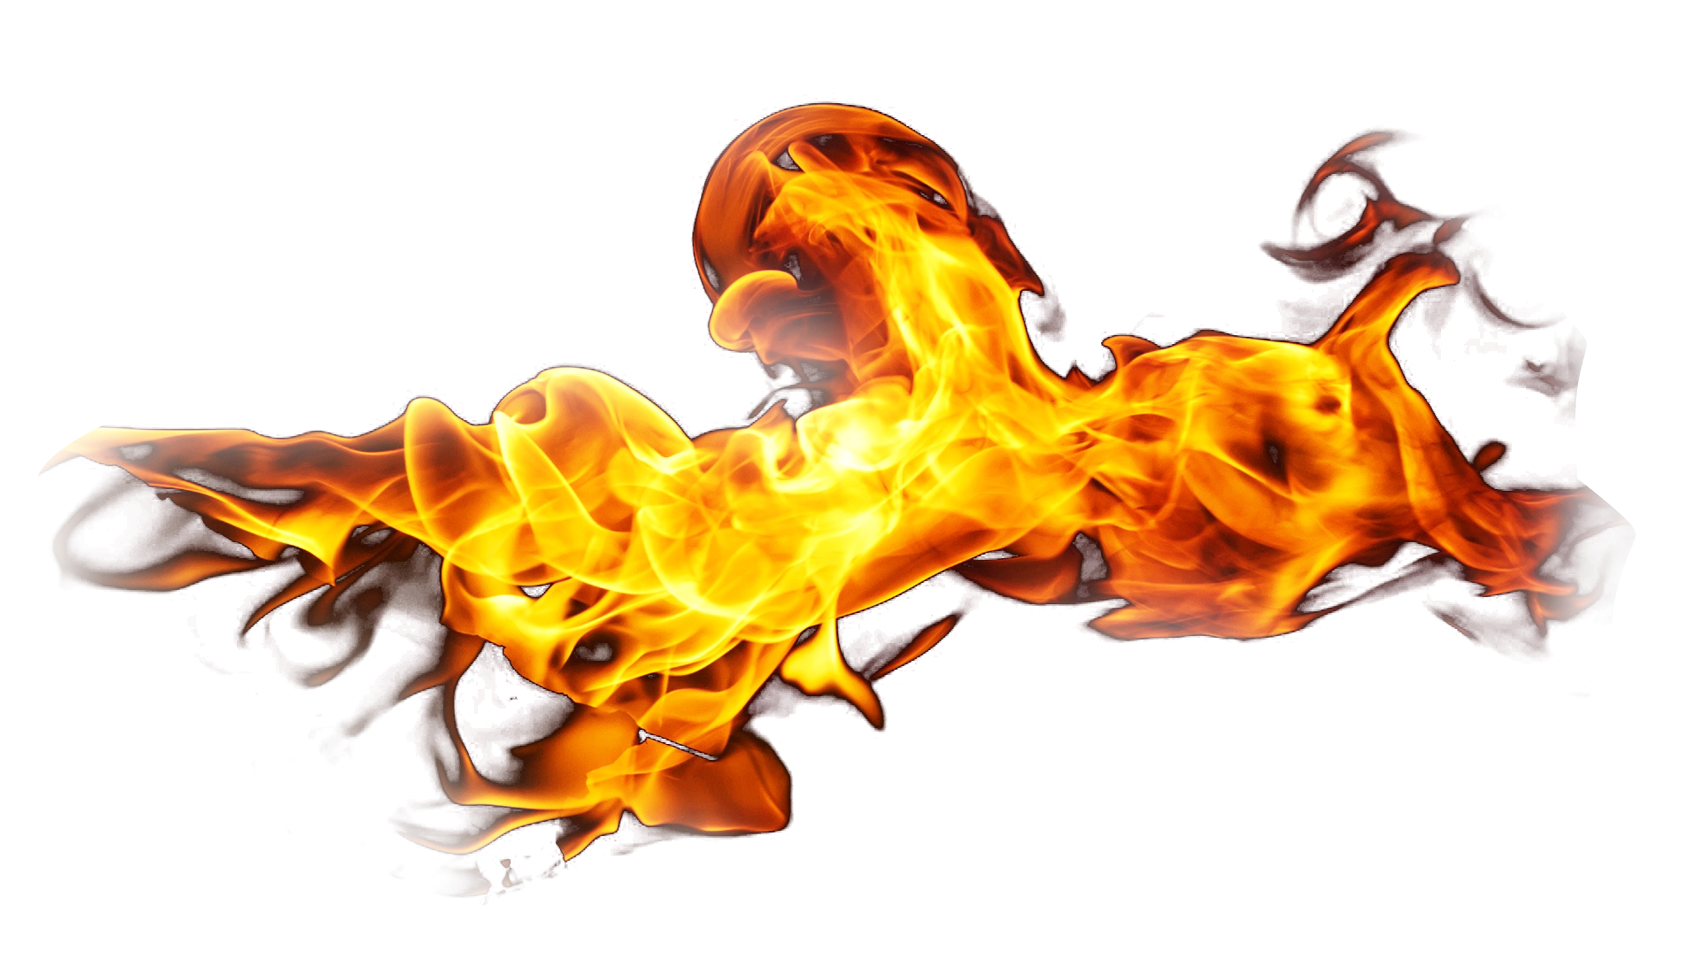 Fire Png Clipart Download #44294.